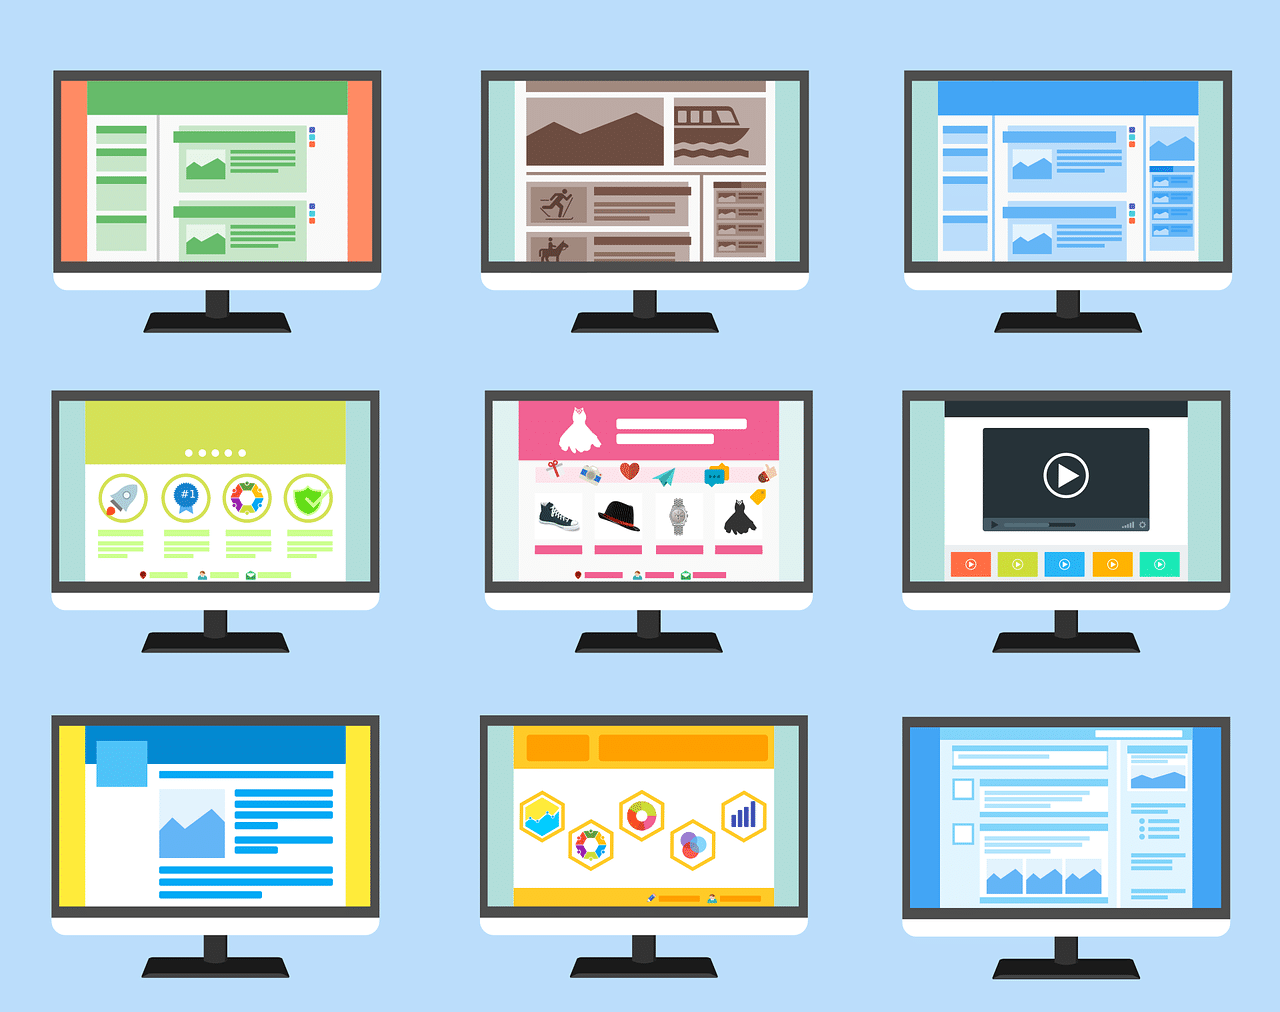 Research and planning is vital when it comes to web design